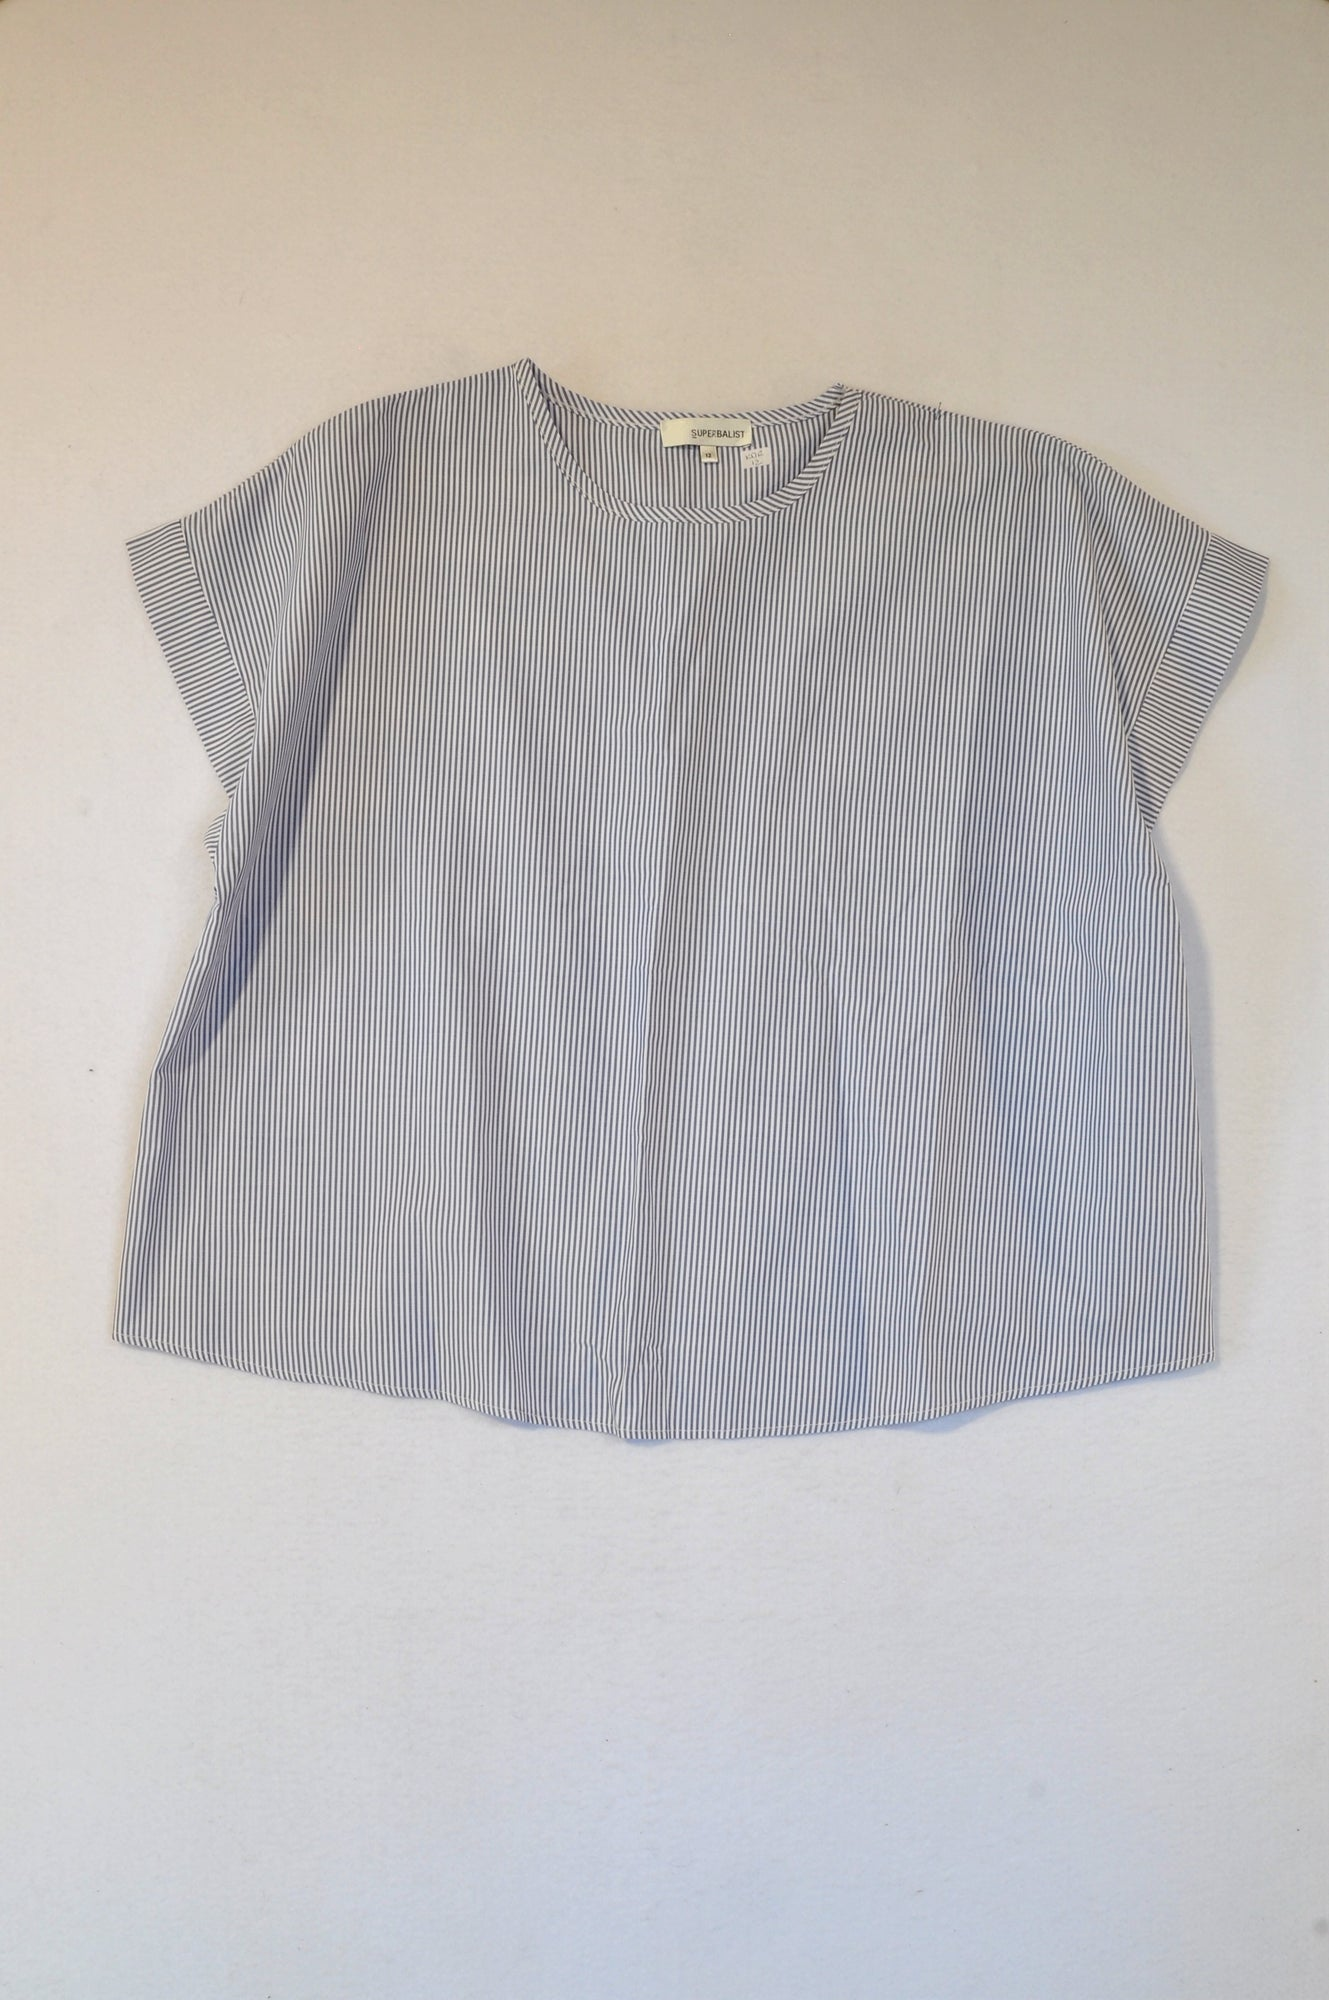 Superbalist Blue Pinstripe Lightweight Cropped T-shirt Women Size 12